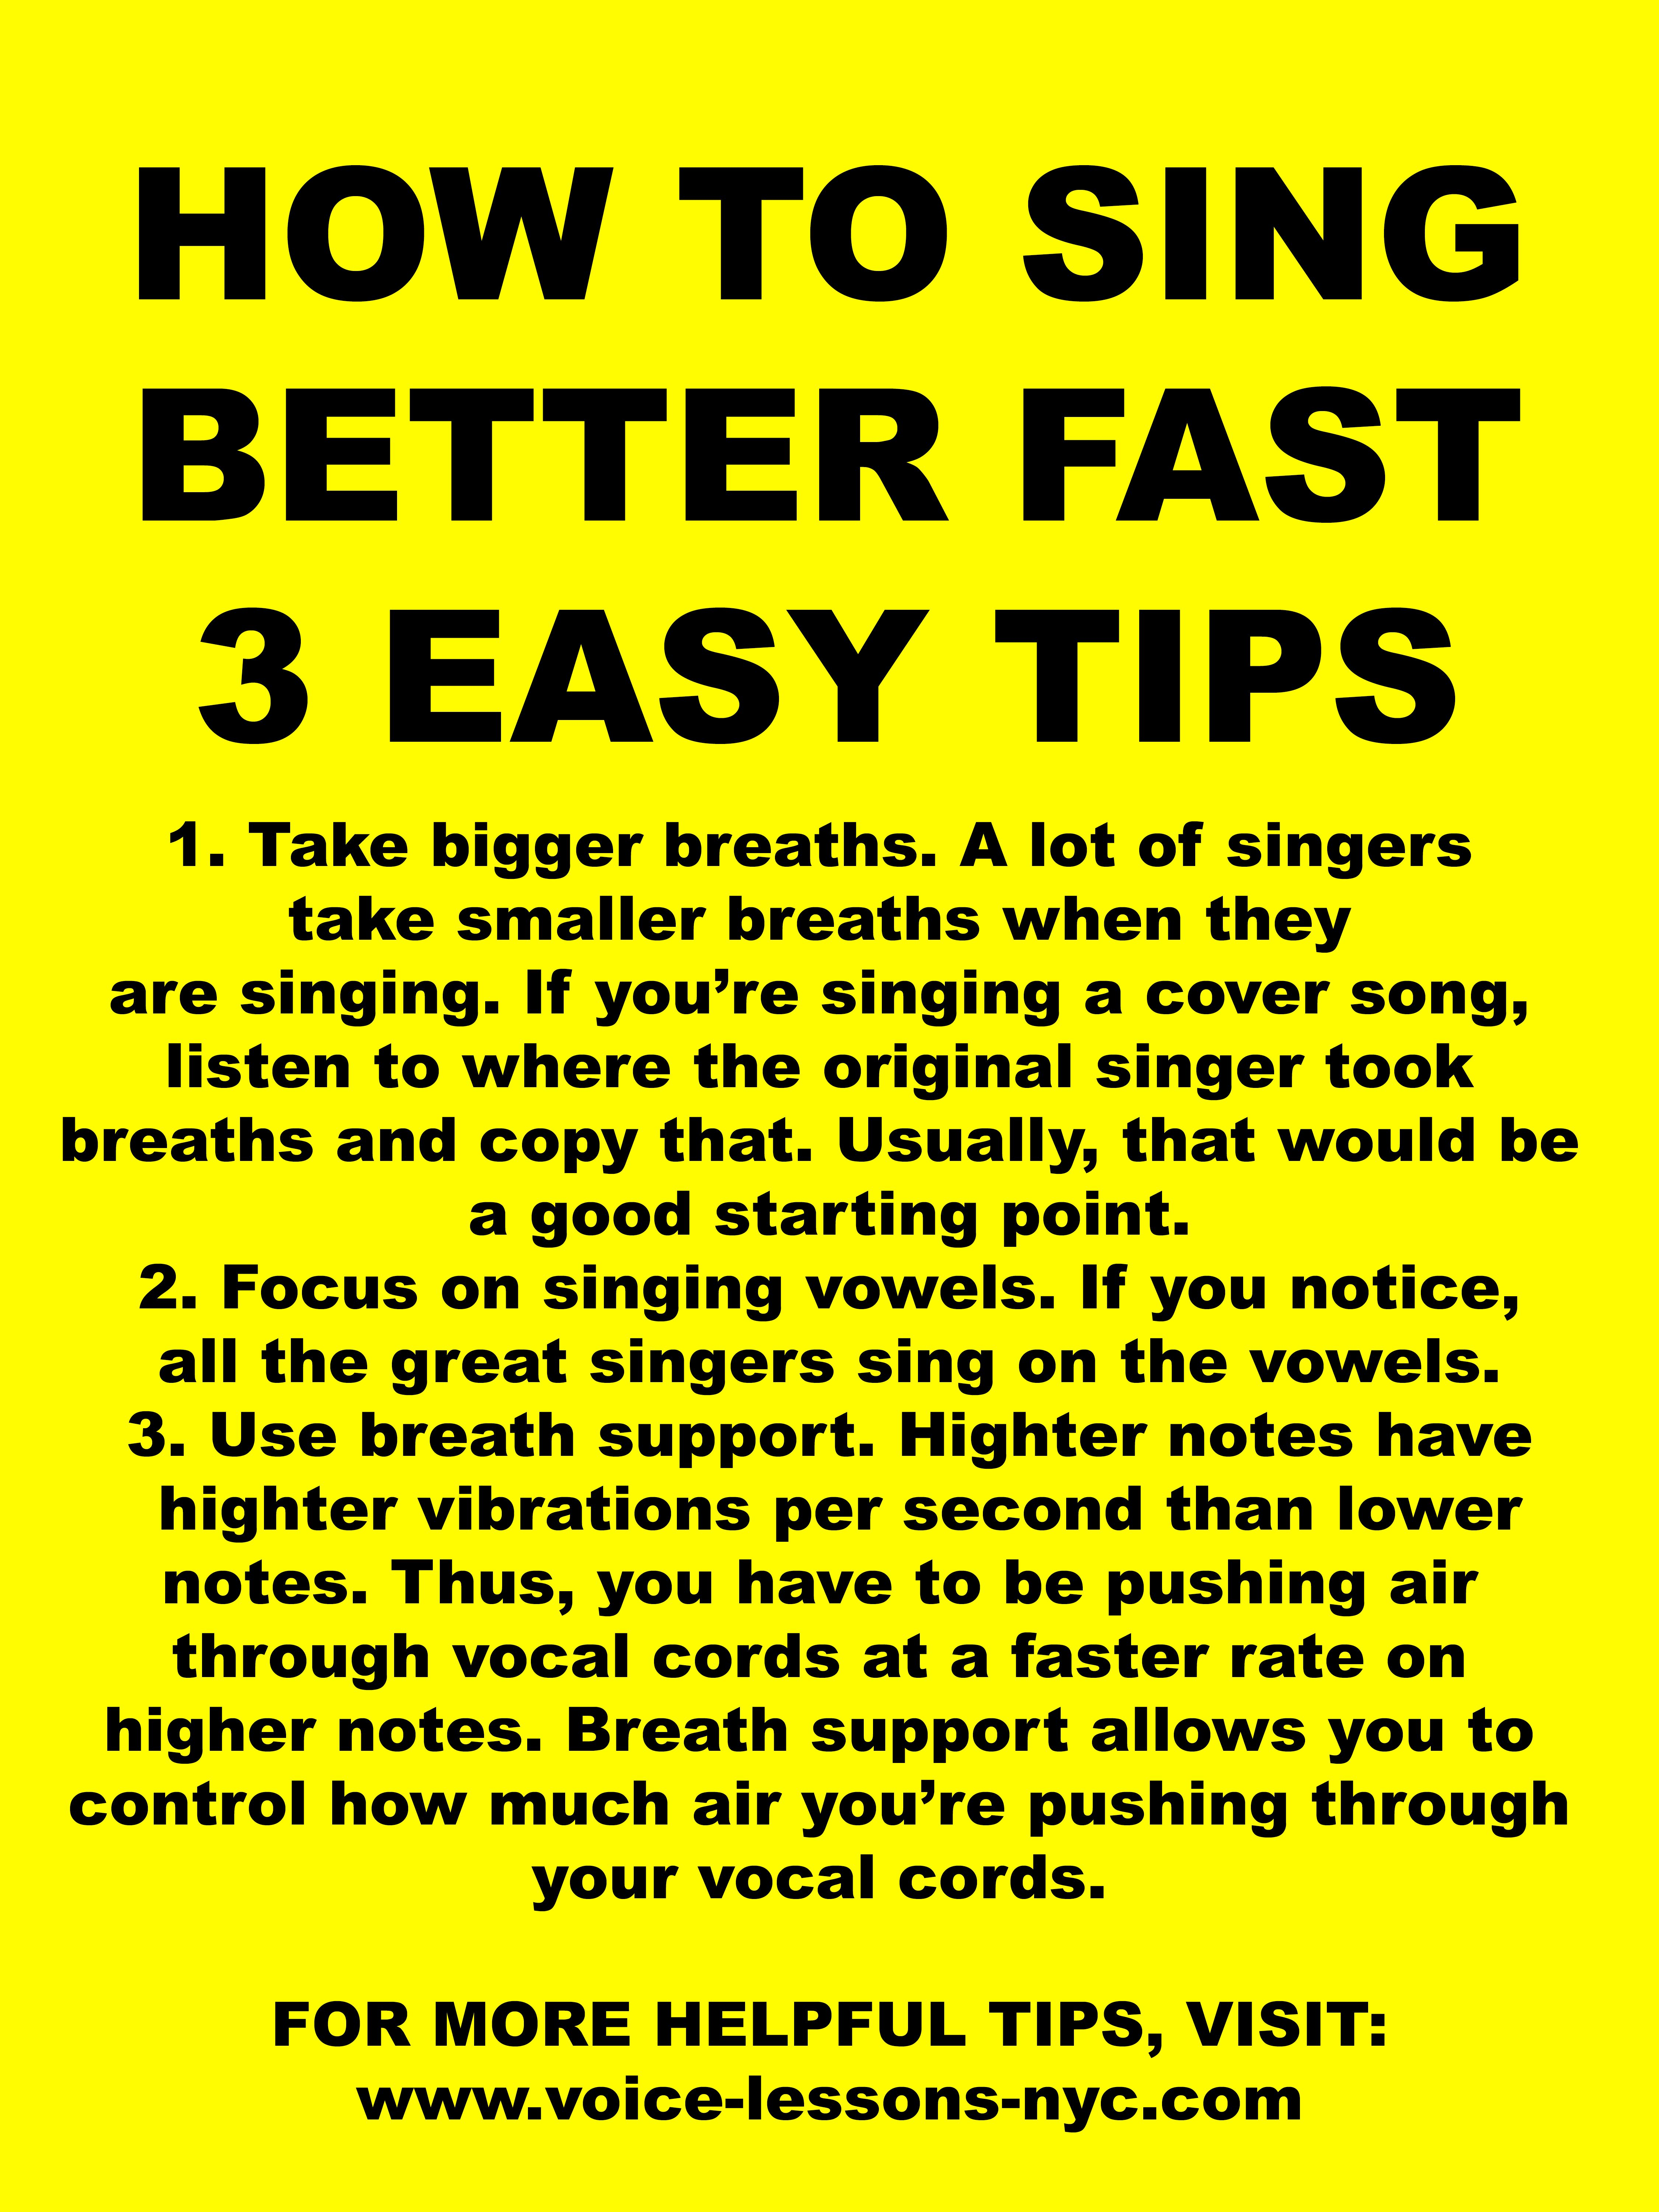 How To Sing Better Fast These 3 Easy Singing Tips Will Help You Improve Your Singing Ability Quickly And Often Learn Singing Singing Techniques Singing Tips